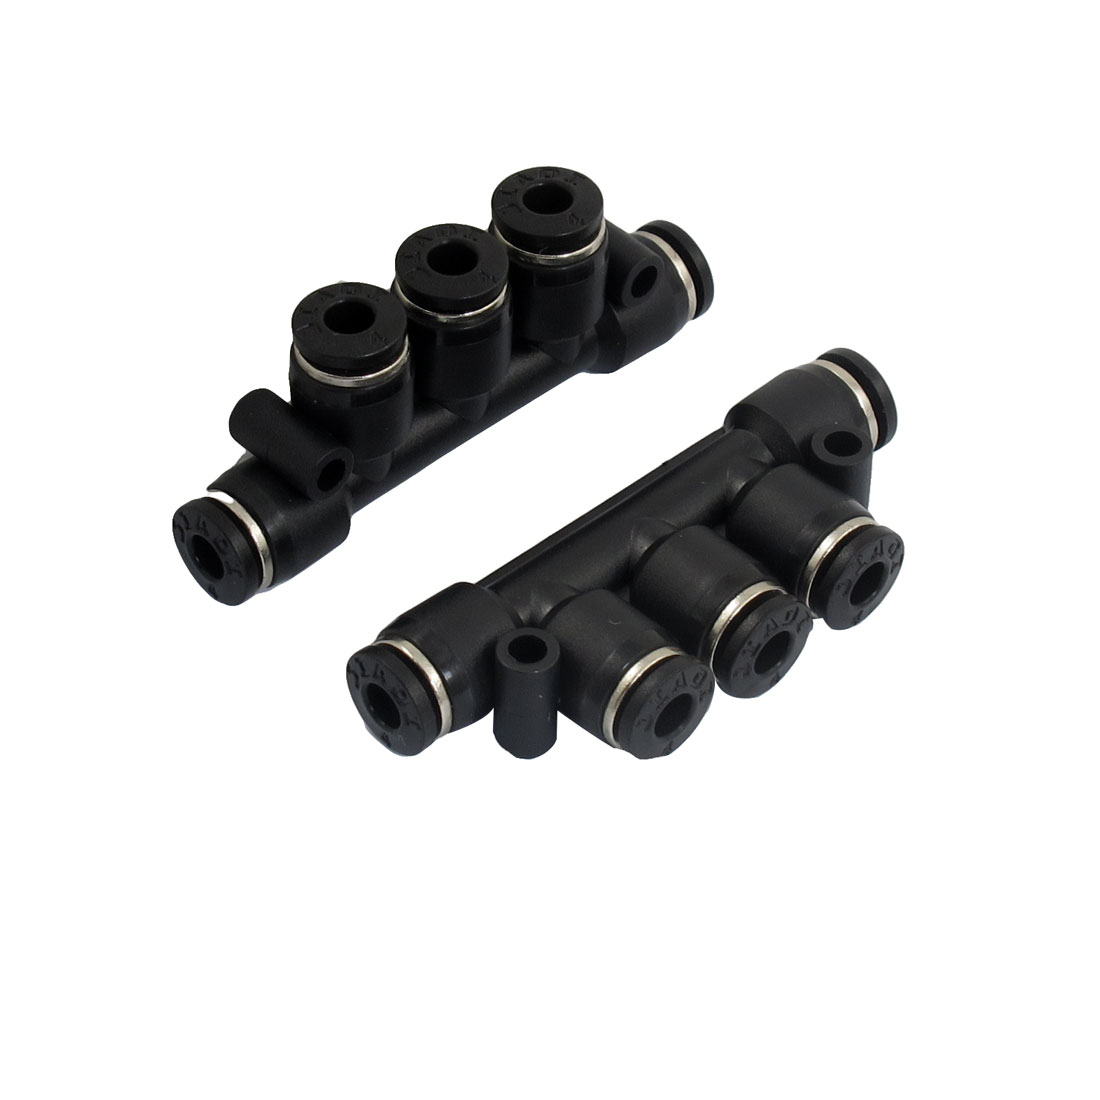 10 x Pcs Air Pneumatic 5 Ways 4mm to 4mm Push in Connectors Quick Fittings